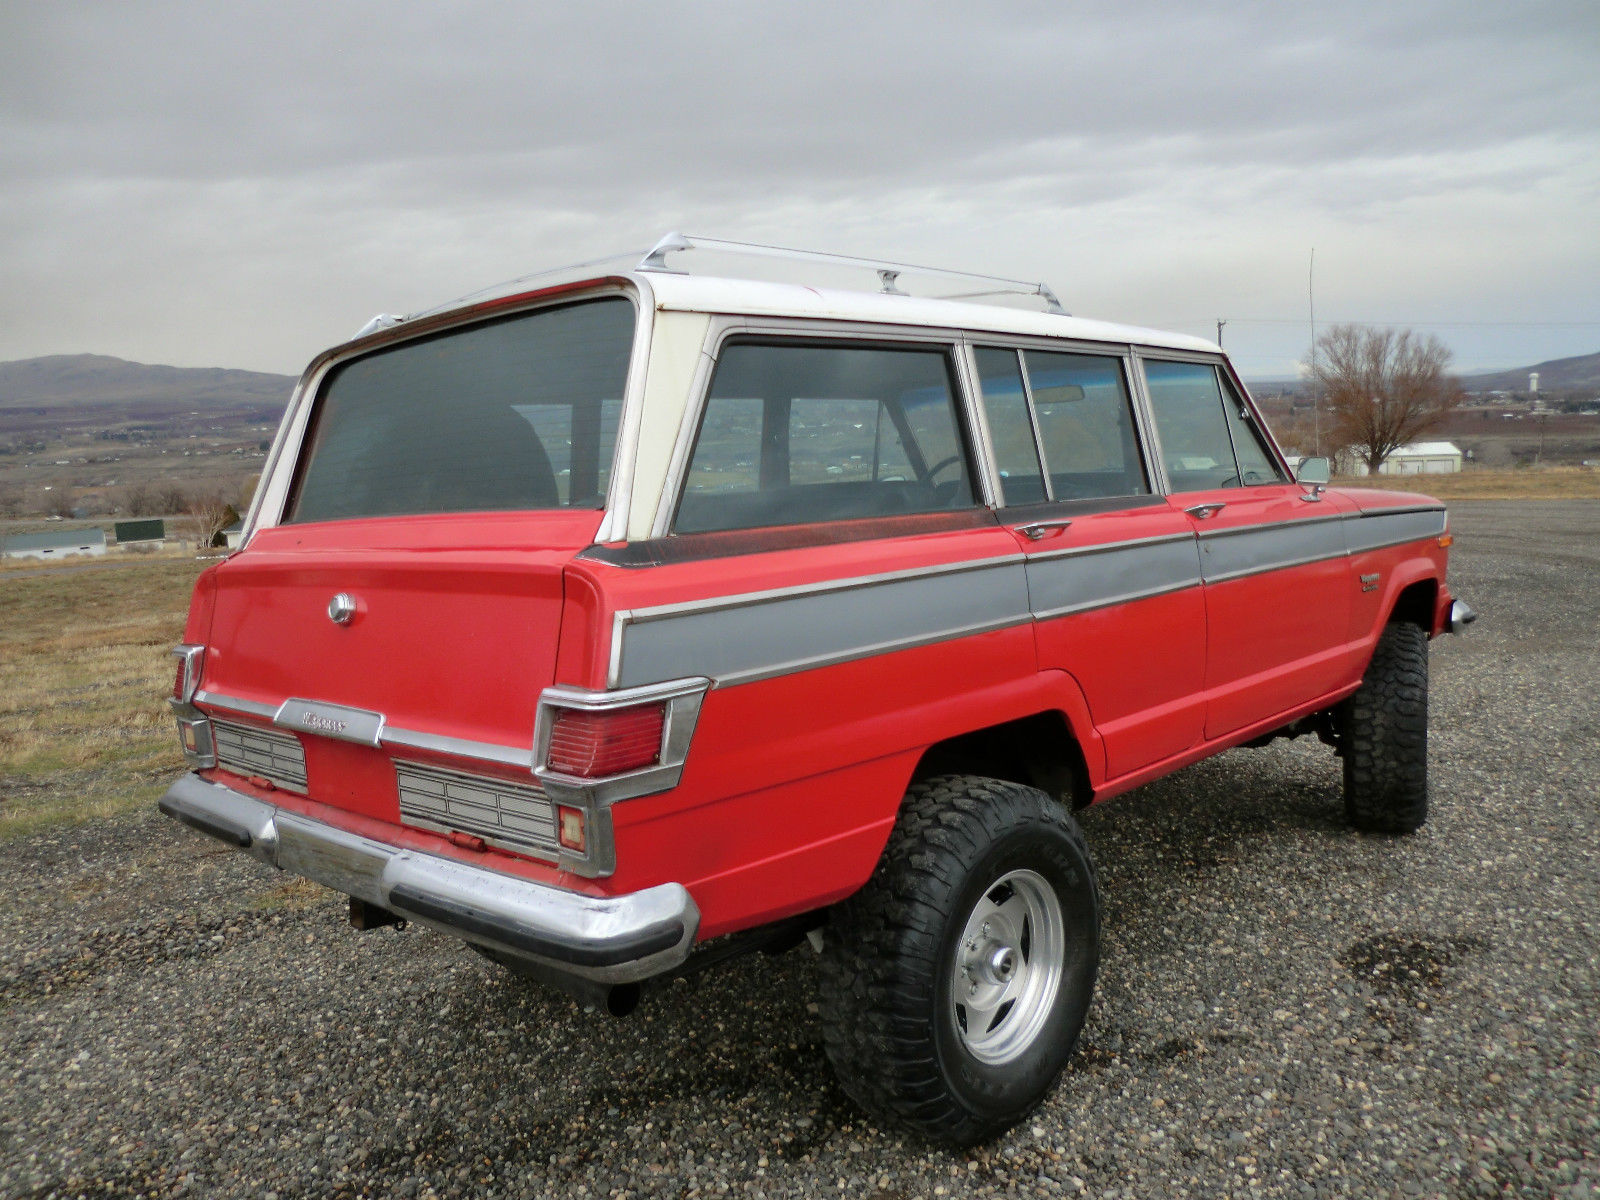 1976 jeep wagoneer 401 v8 a c ps rot free clean classic amc grand classic jeep wagoneer 1976. Black Bedroom Furniture Sets. Home Design Ideas